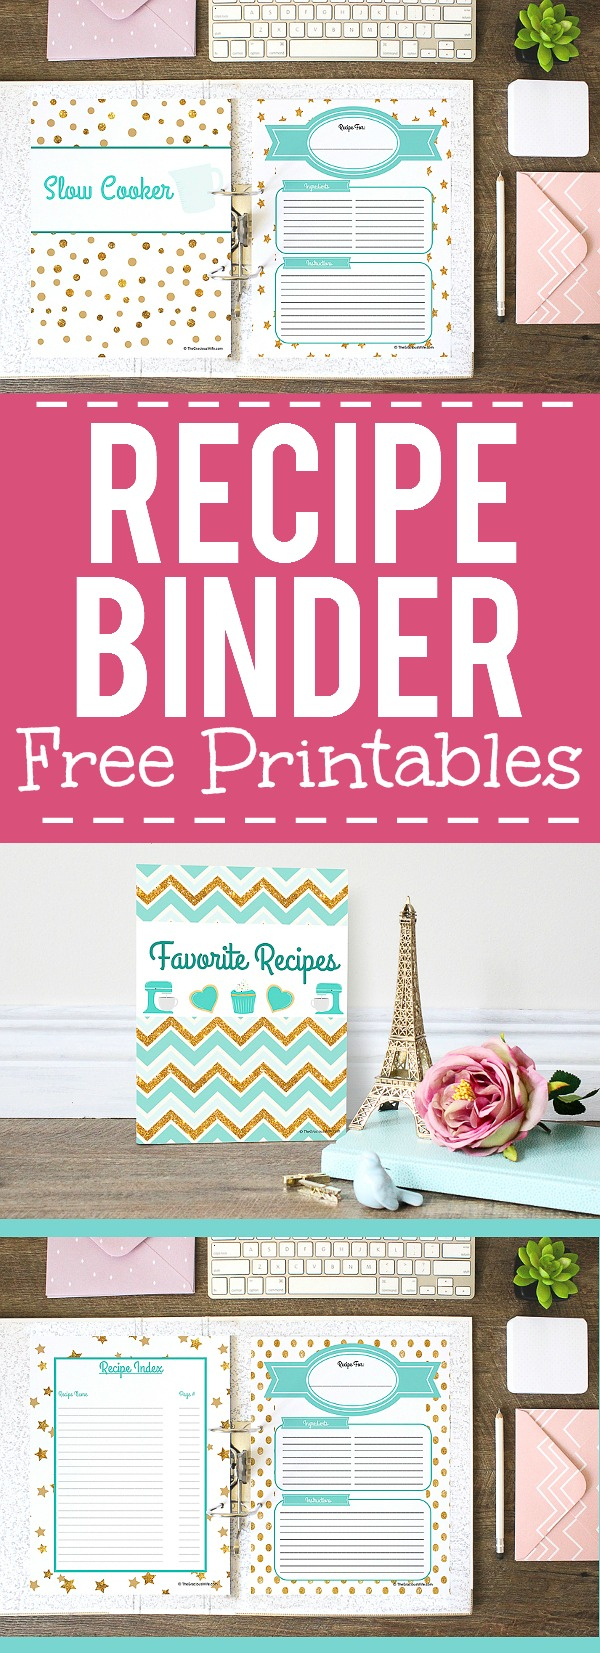 How To Make A Recipe Binder | Free Recipe Binder Printables - Free Printable Recipe Binder